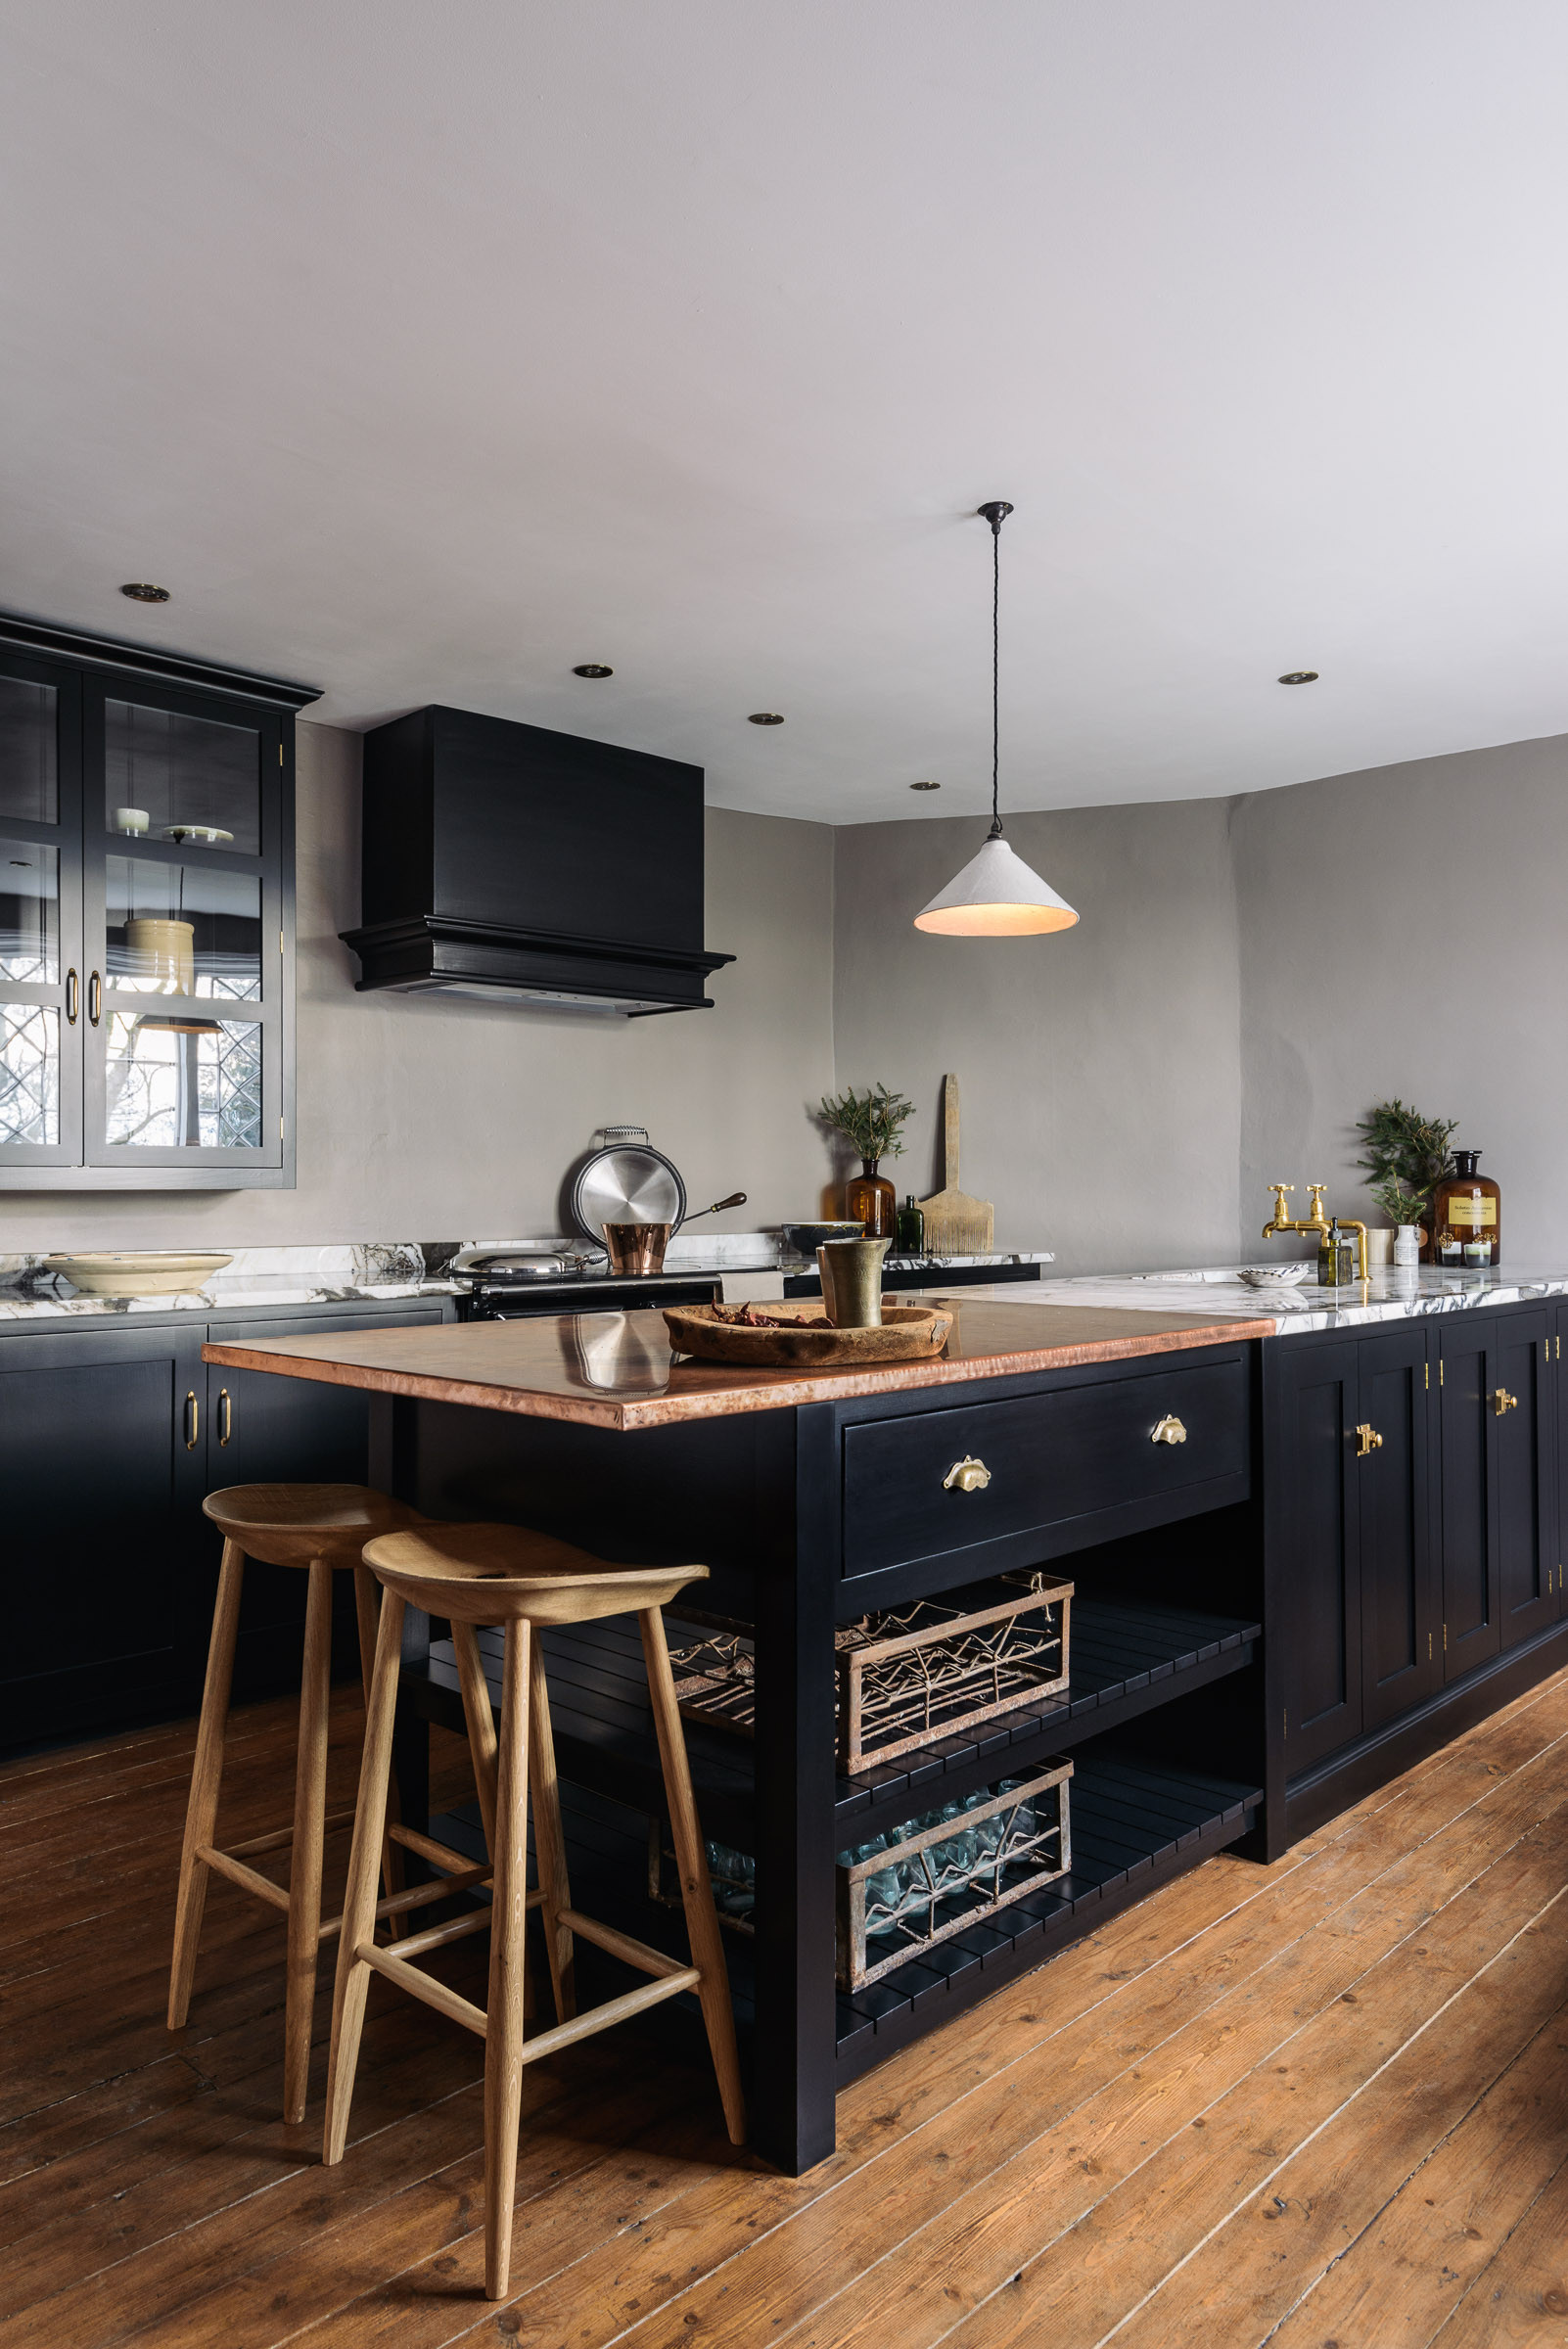 75 Beautiful Kitchen With Black Cabinets And Copper Countertops Pictures Ideas July 2021 Houzz